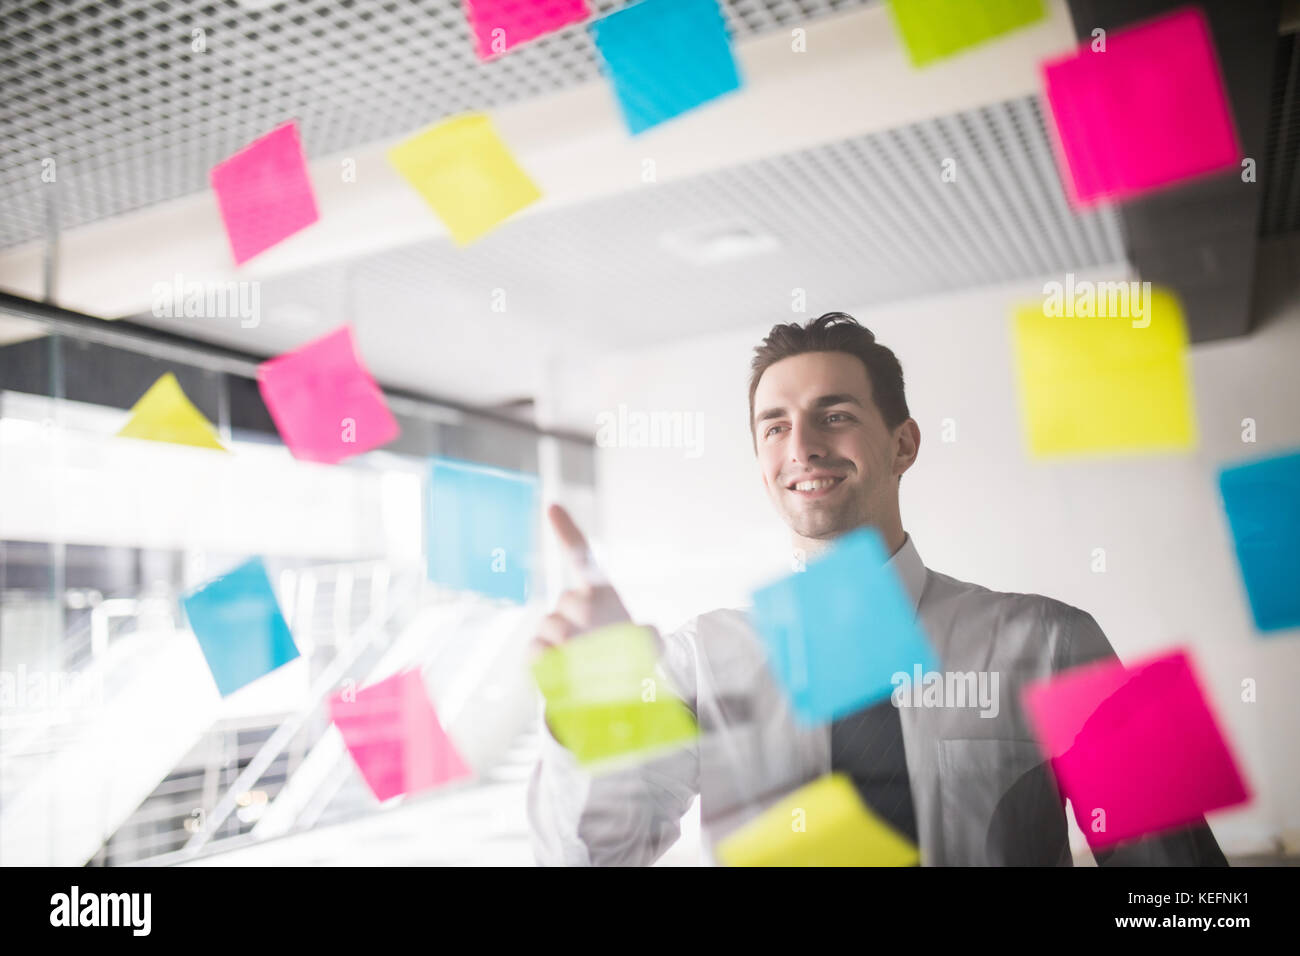 Business planning with sticker memo on glass - Stock Image